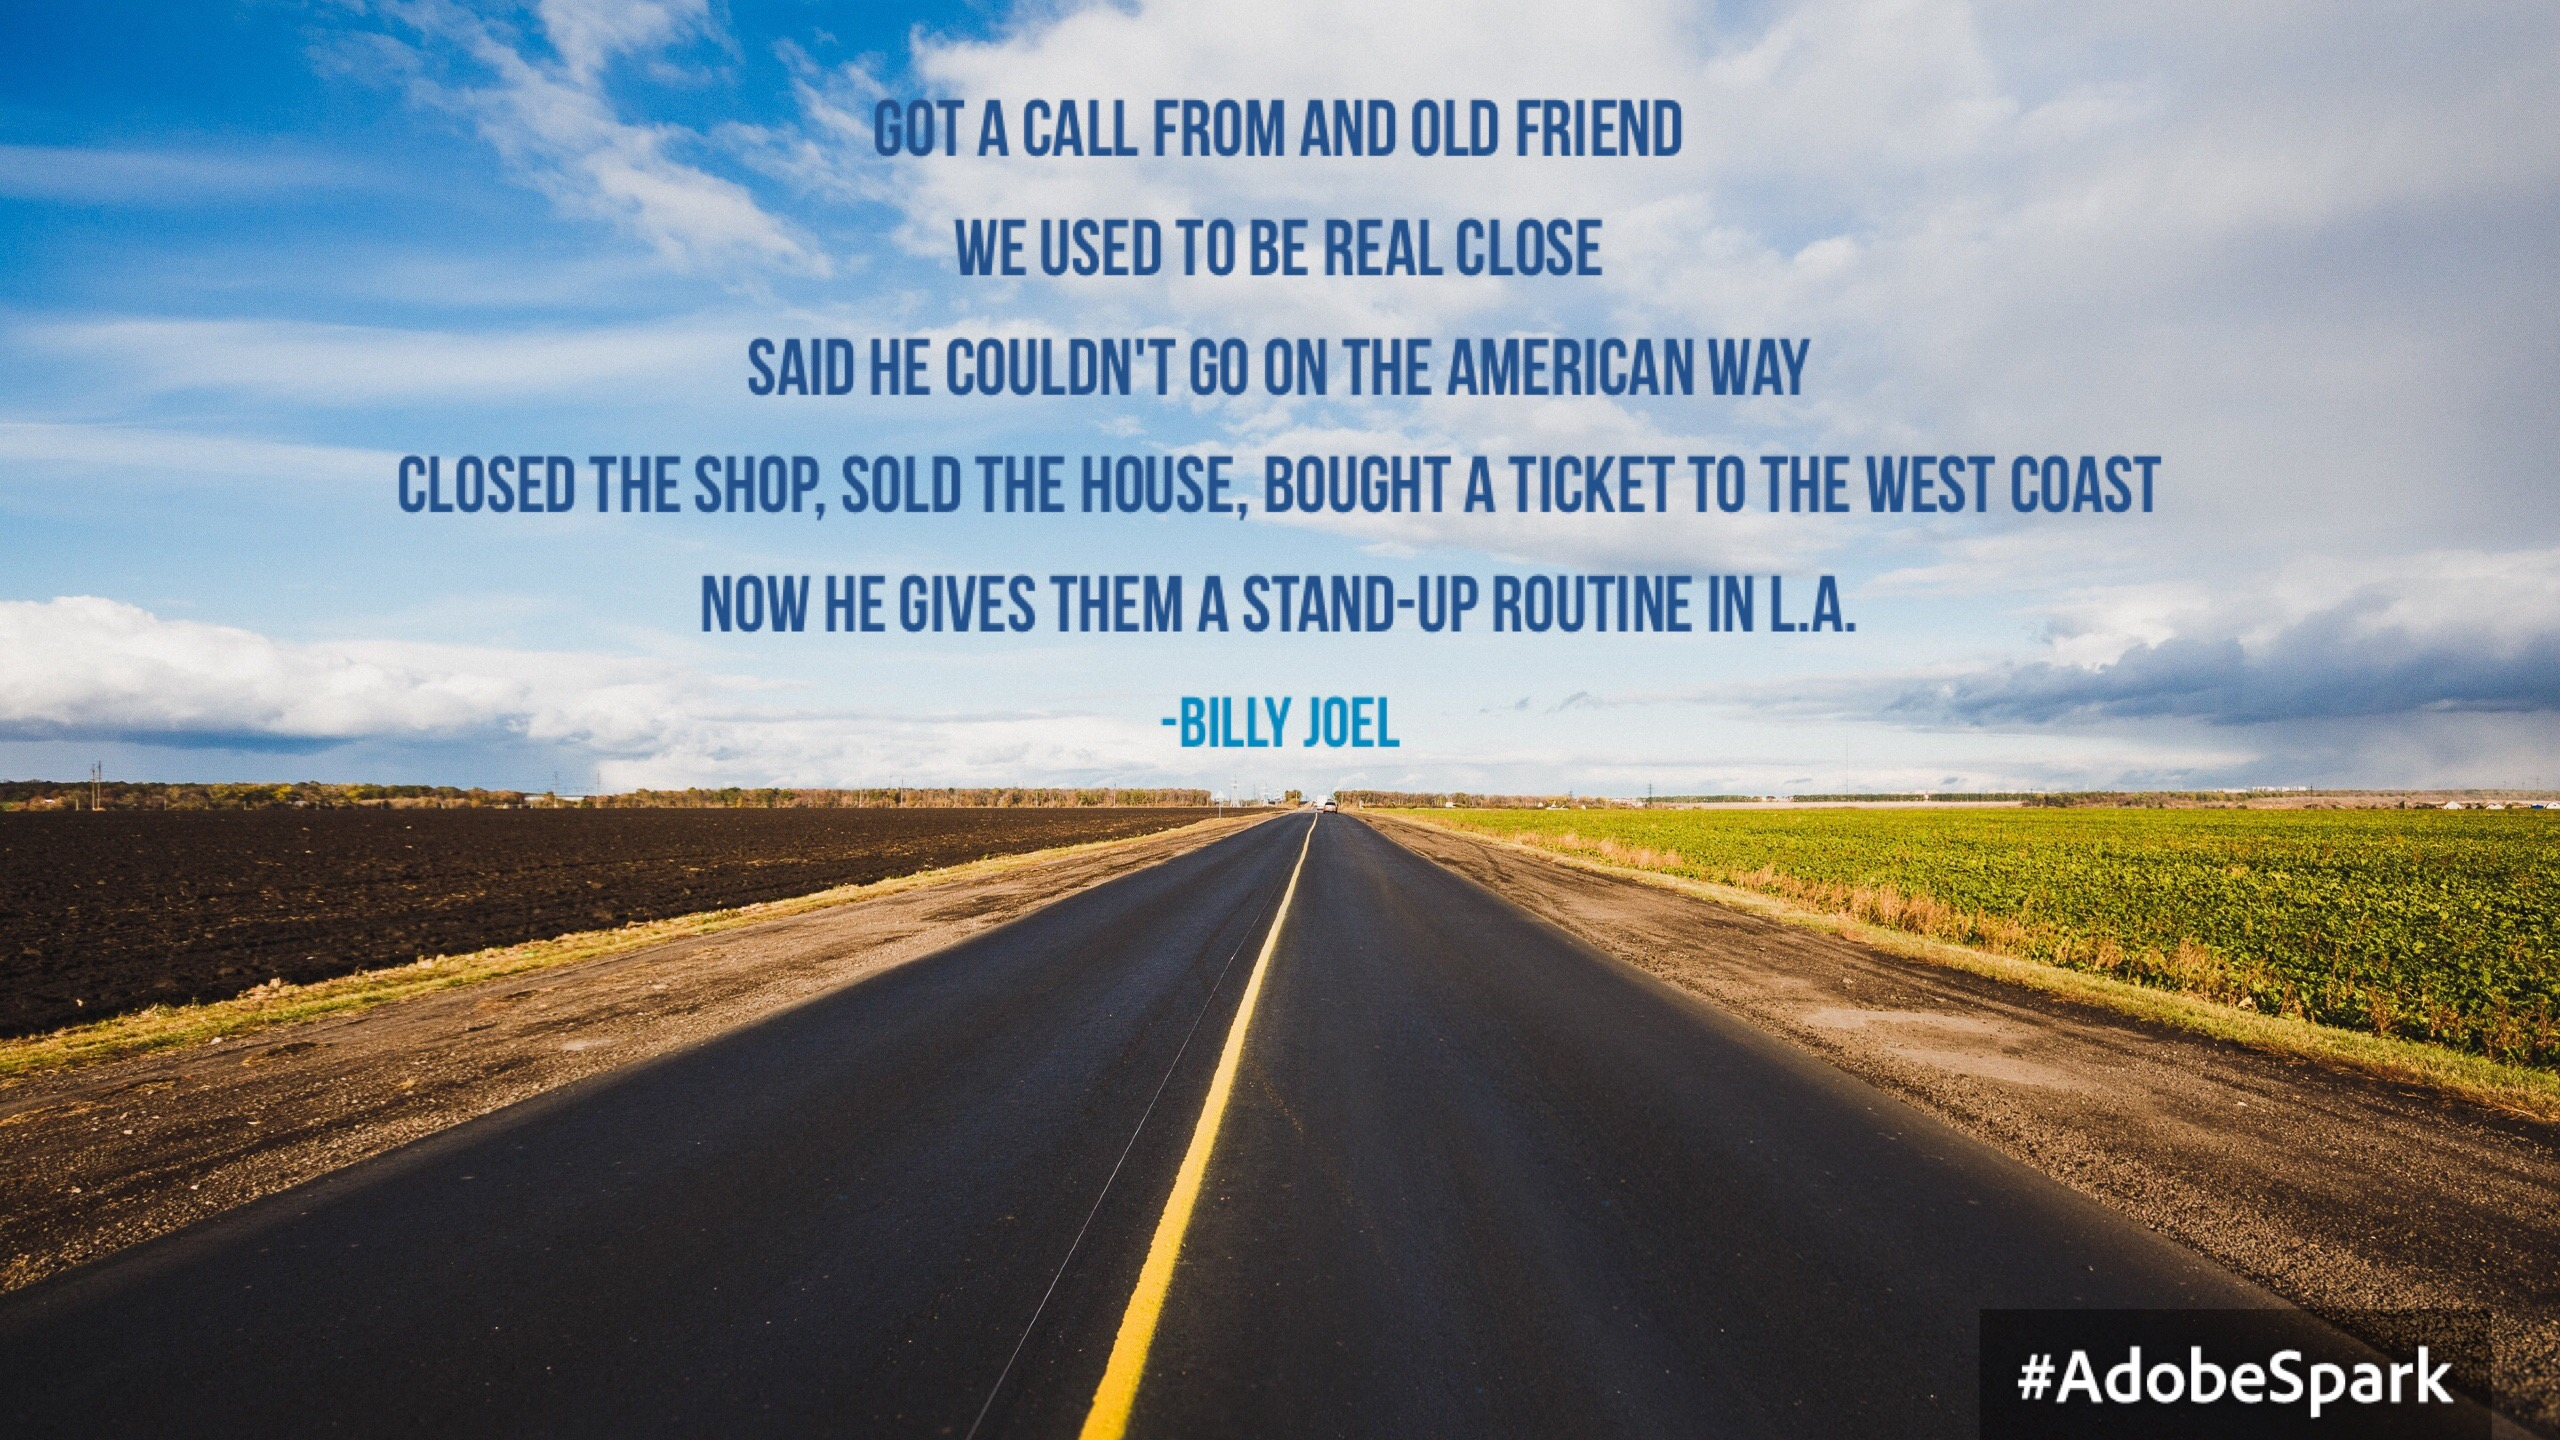 billy joel quote west coast L.A. atlanta video production bj alden shake up the paradigm